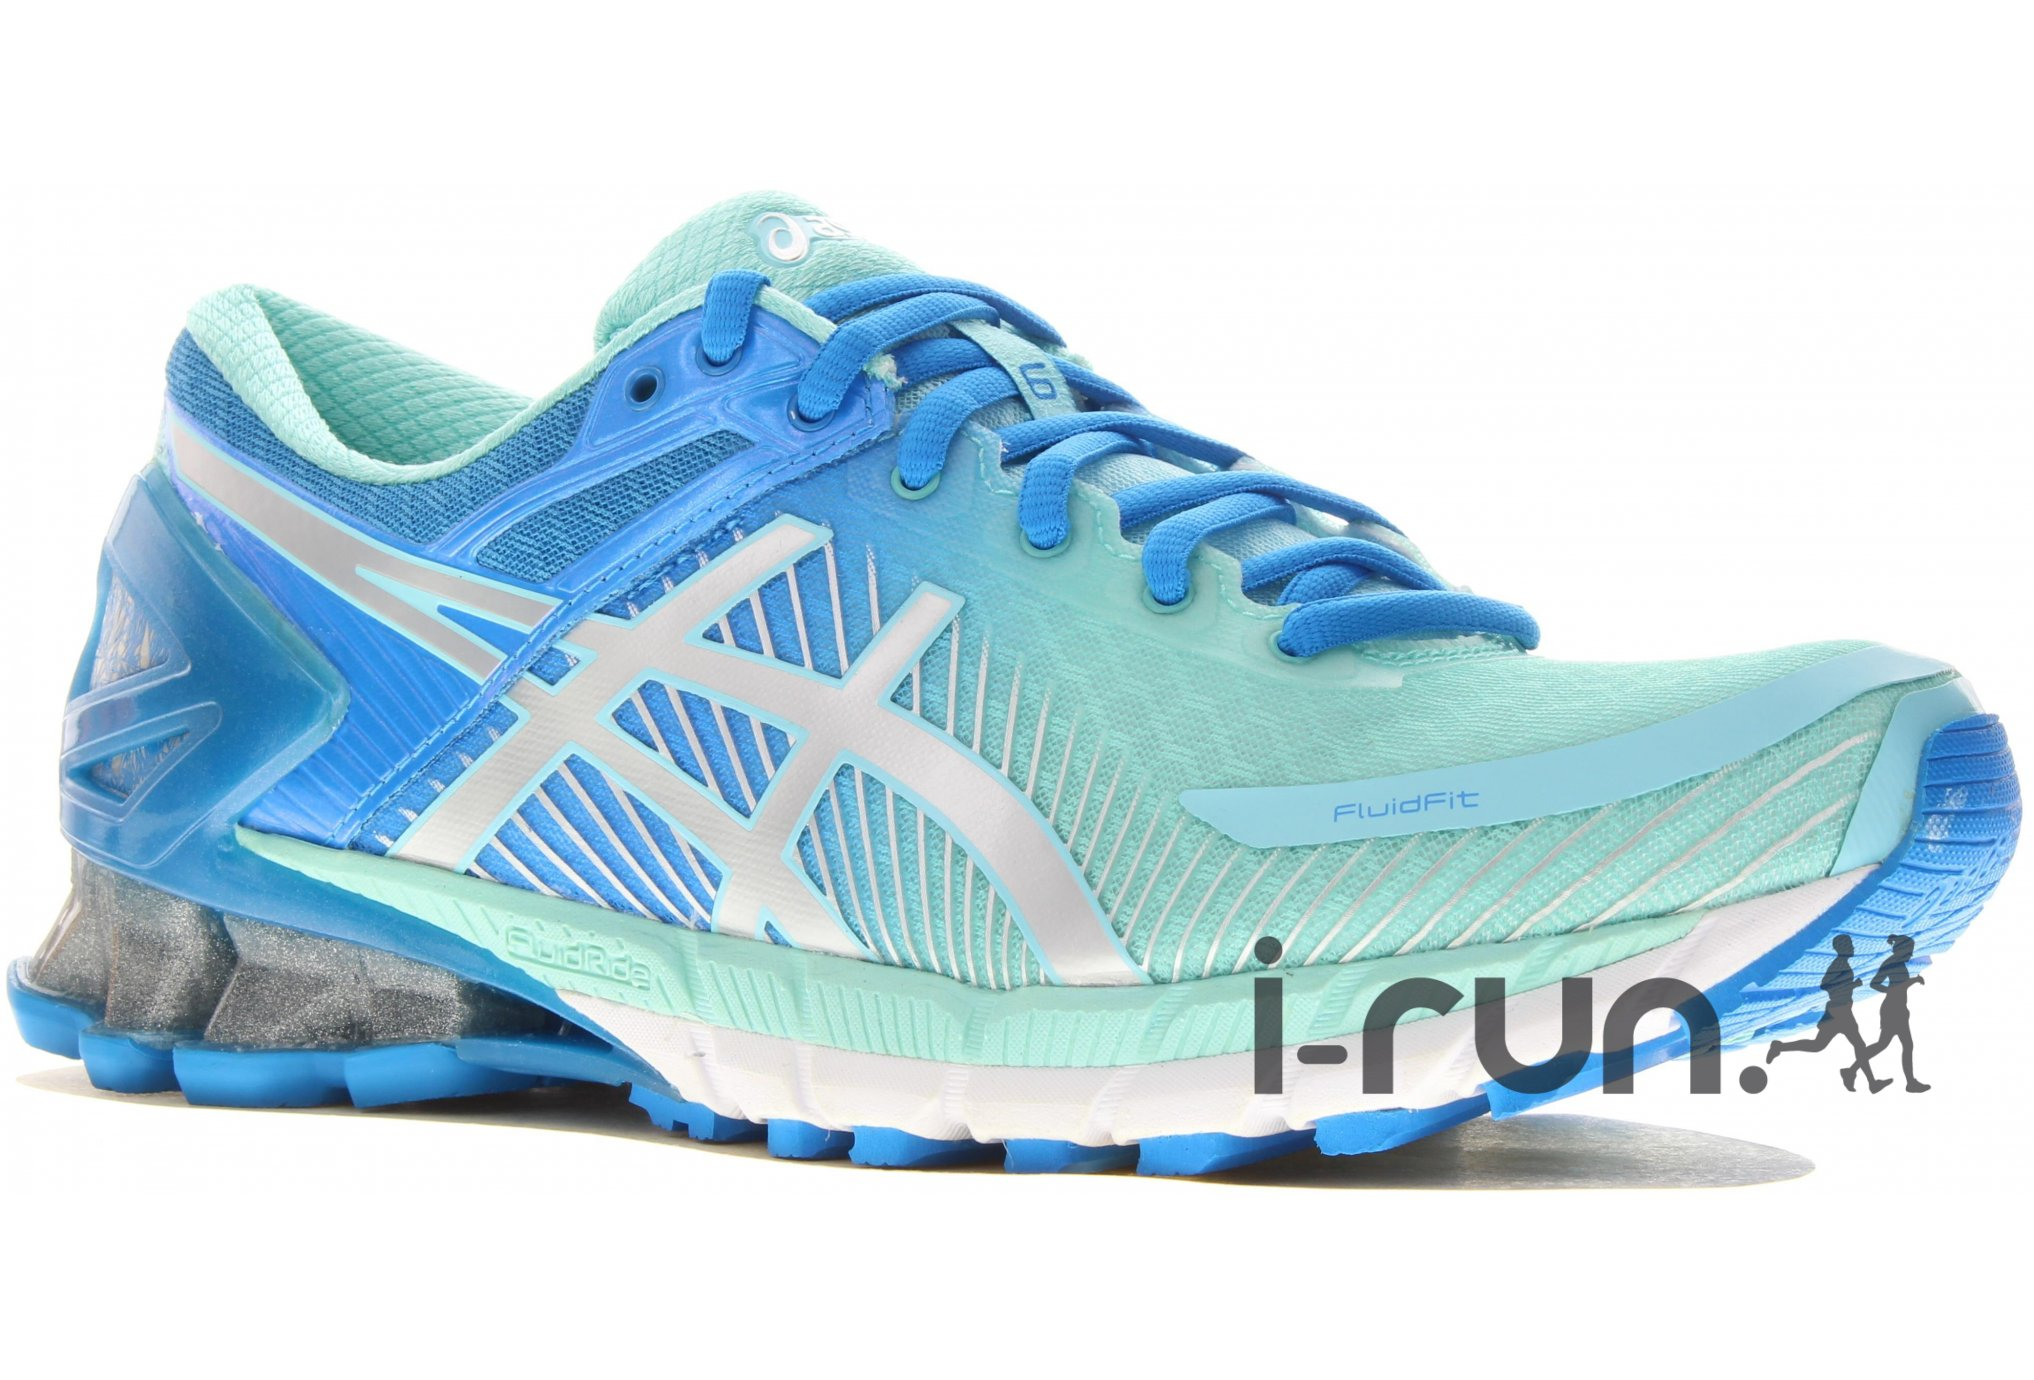 mode designer ccbc3 f7a73 Course Nature LA LUPEENNE - Asics GEL-Kinsei 6 W Chaussures ...